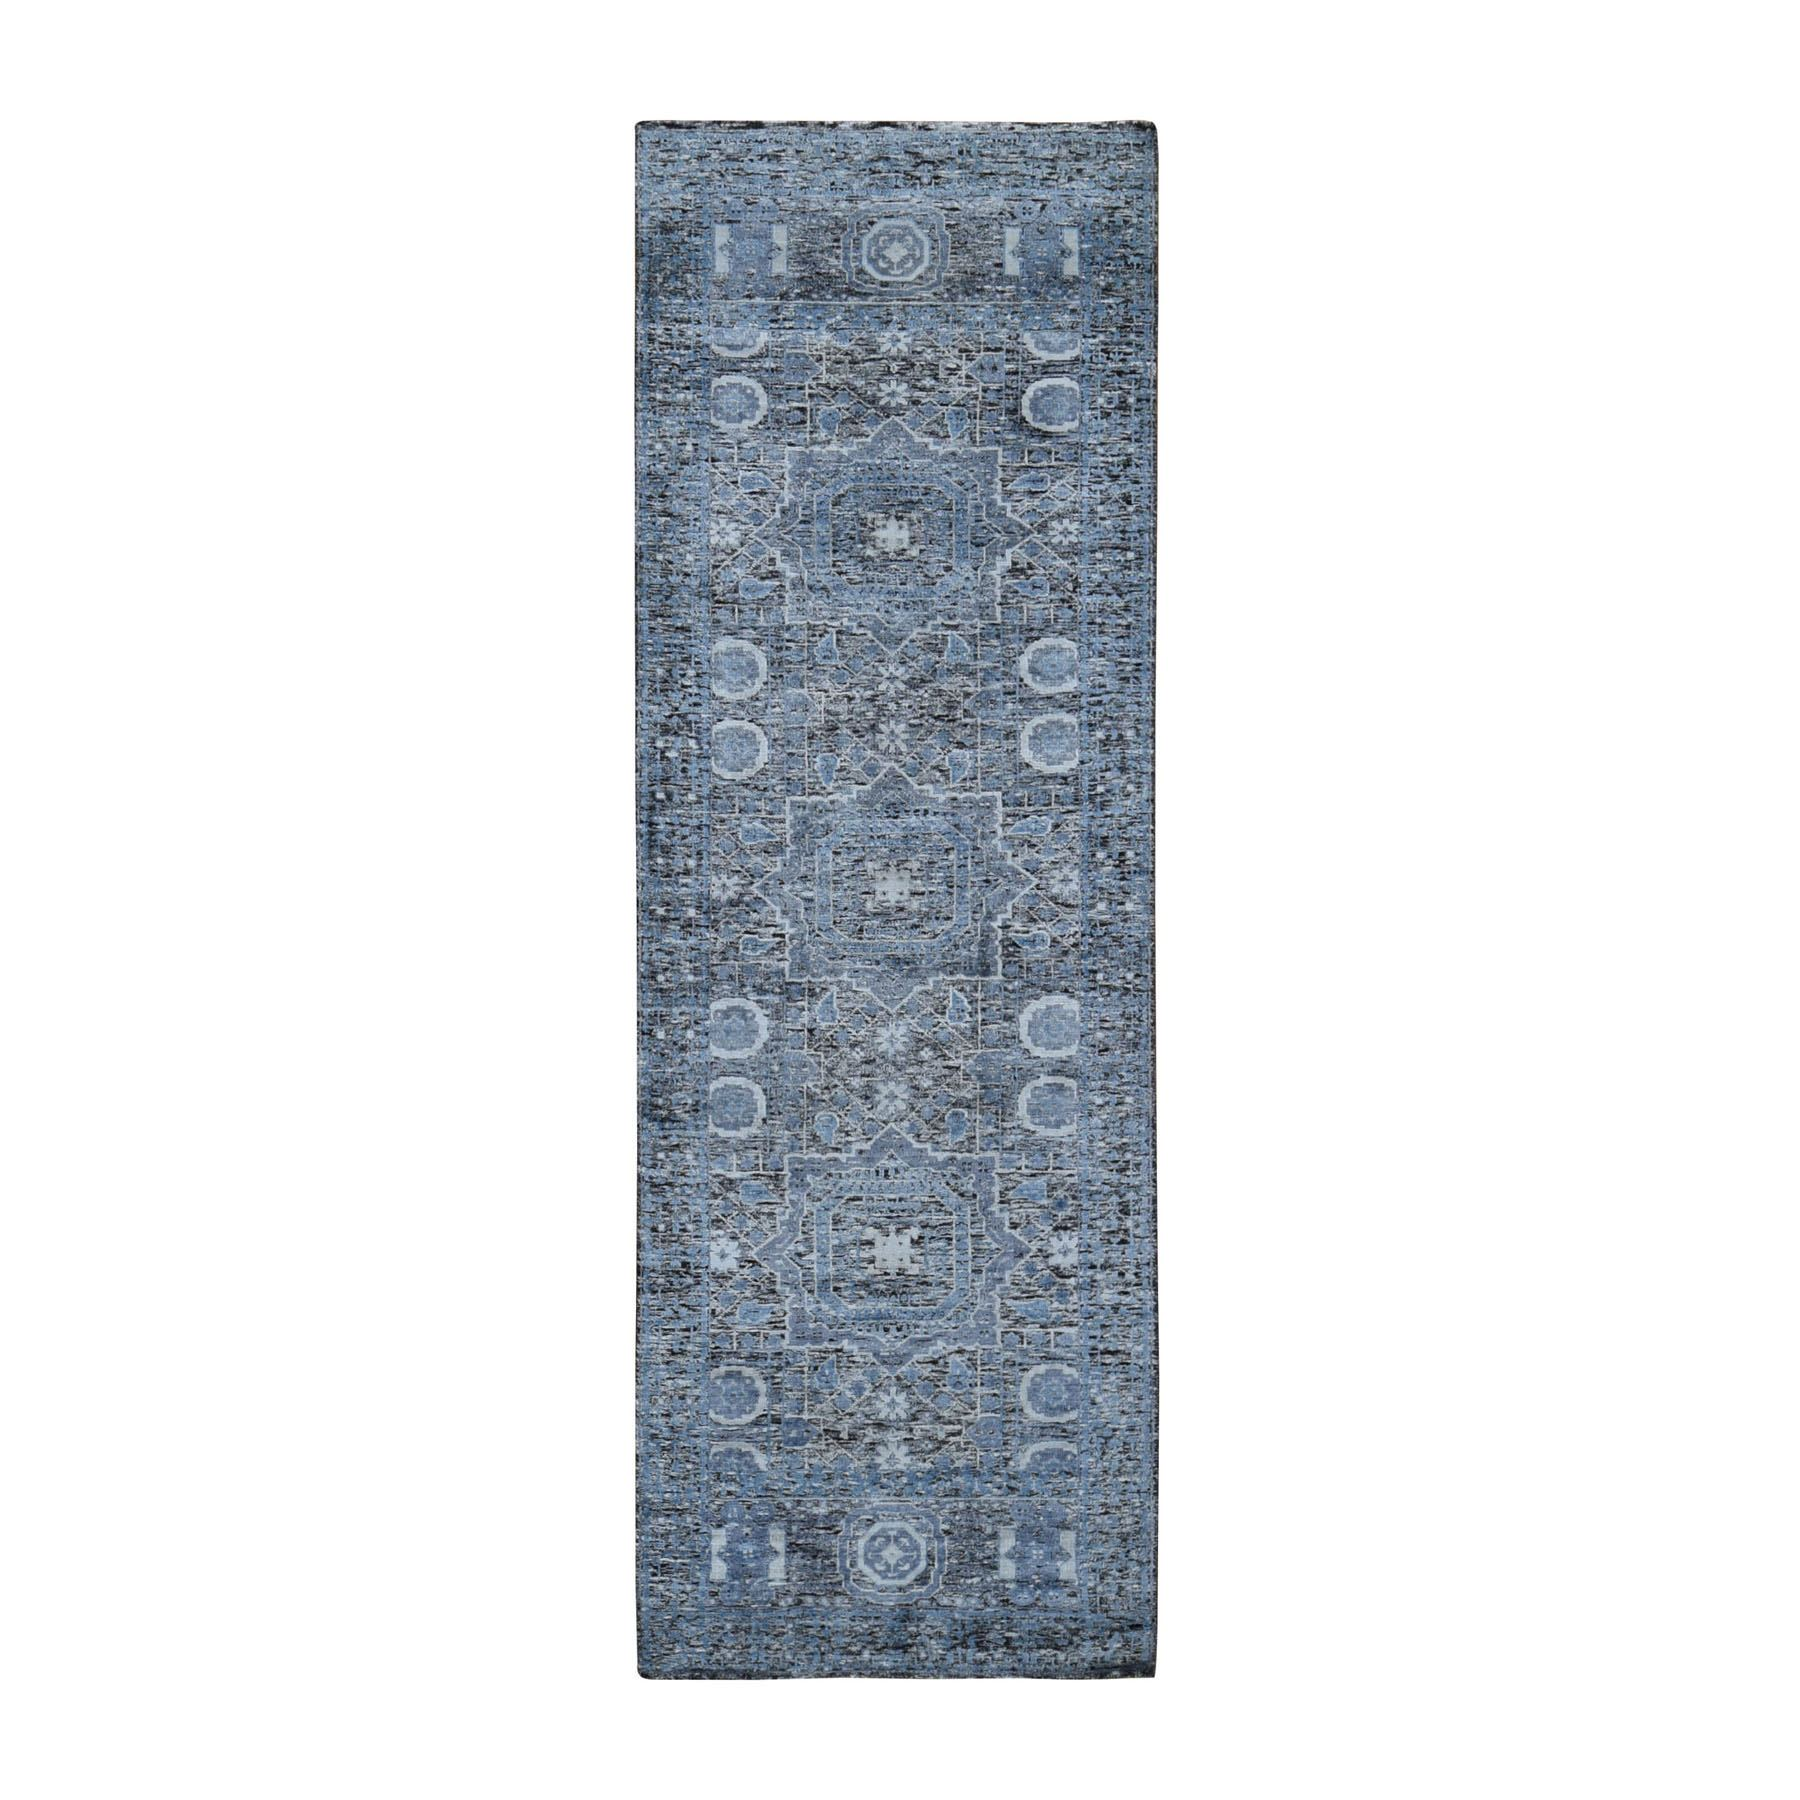 "2'7""x8'1"" Silk With Textured Wool Hi-Low Pile Mamluk Design Hand Knotted Runner Oriental Rug"